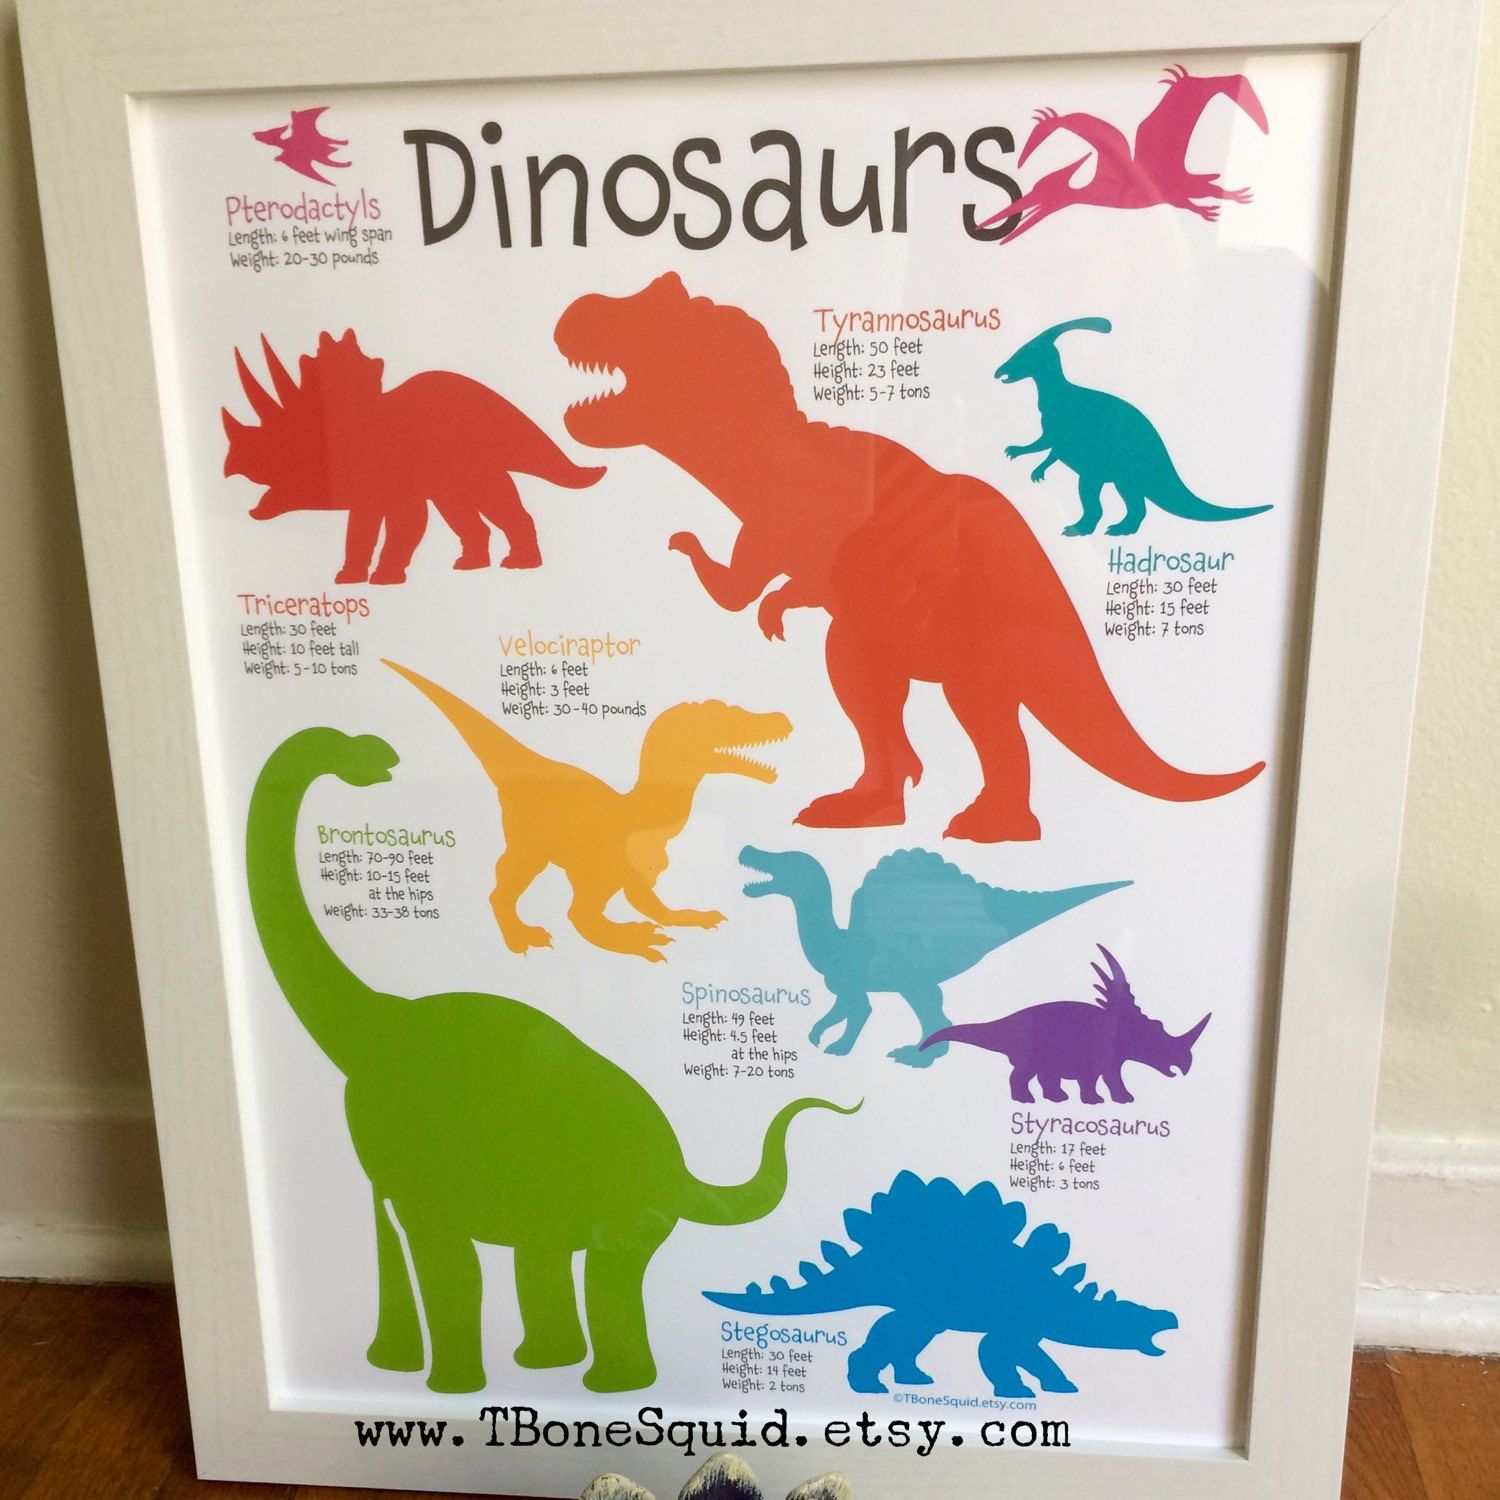 Our Dinosaur Poster Is So Cute It Will Make You Want To Rawwwr Dinosaur Nursery Art Dinosaur Posters Dinosaur Nursery